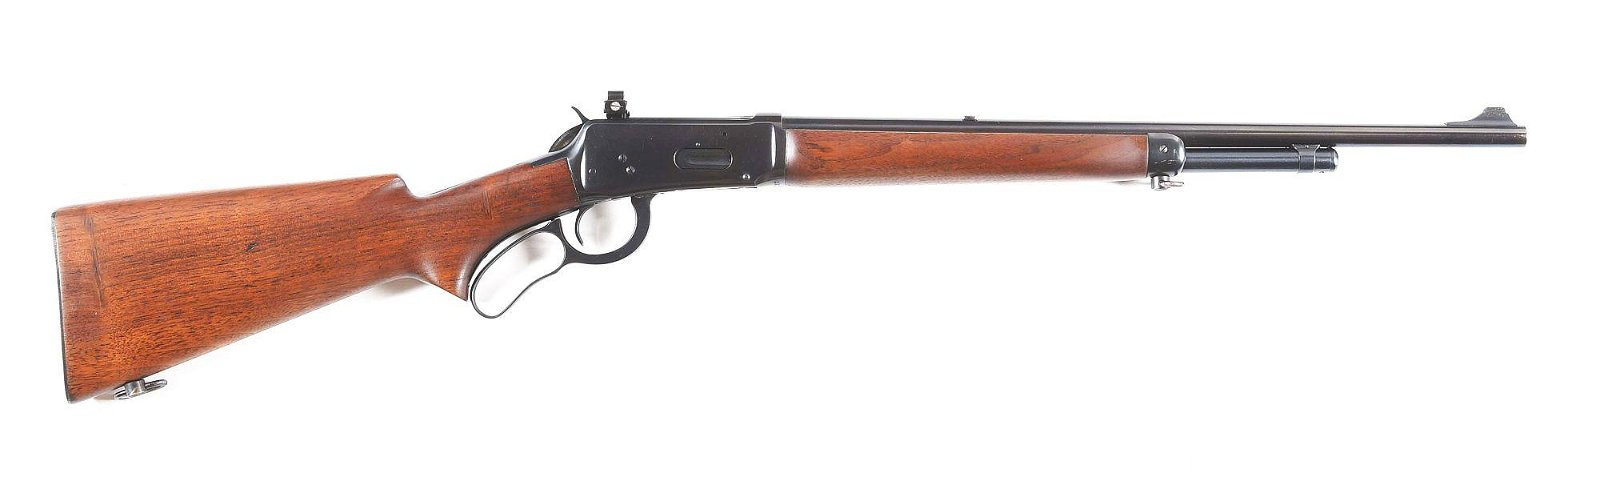 (C) WINCHESTER MODEL 64 .30-30 WINCHESTER LEVER ACTION